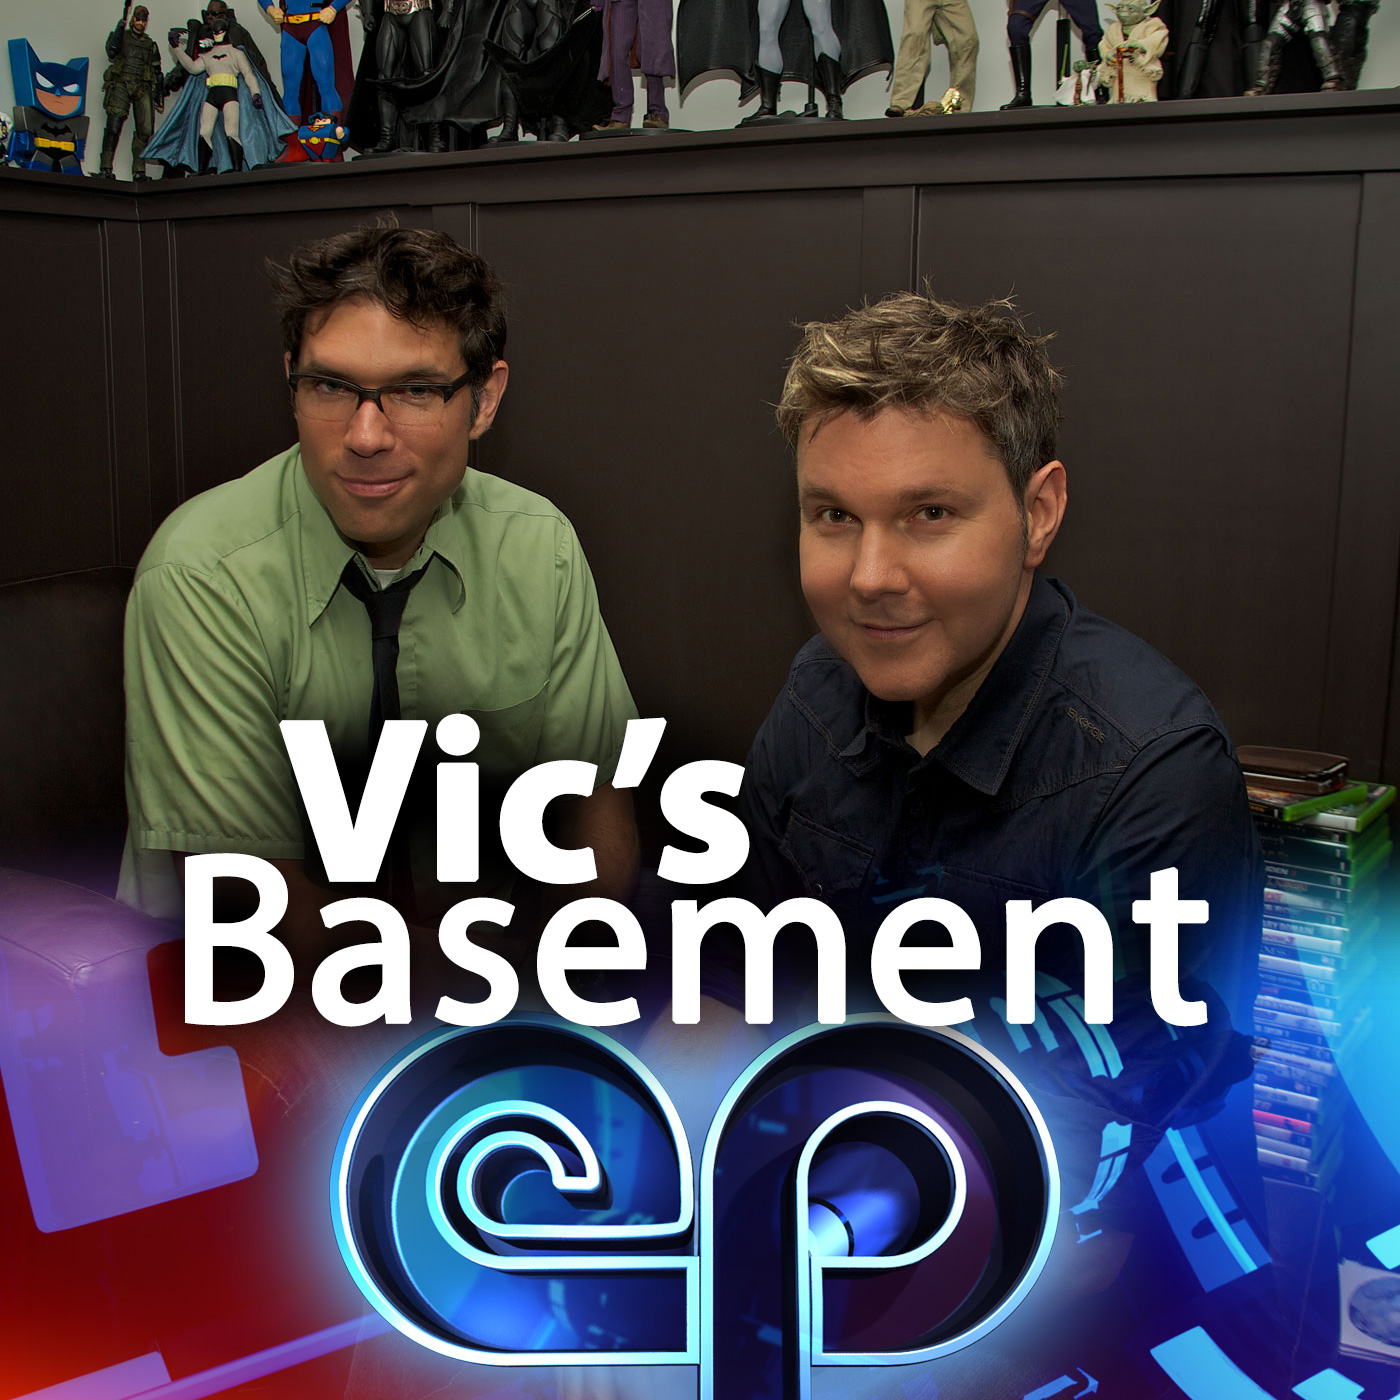 Vic's Basement